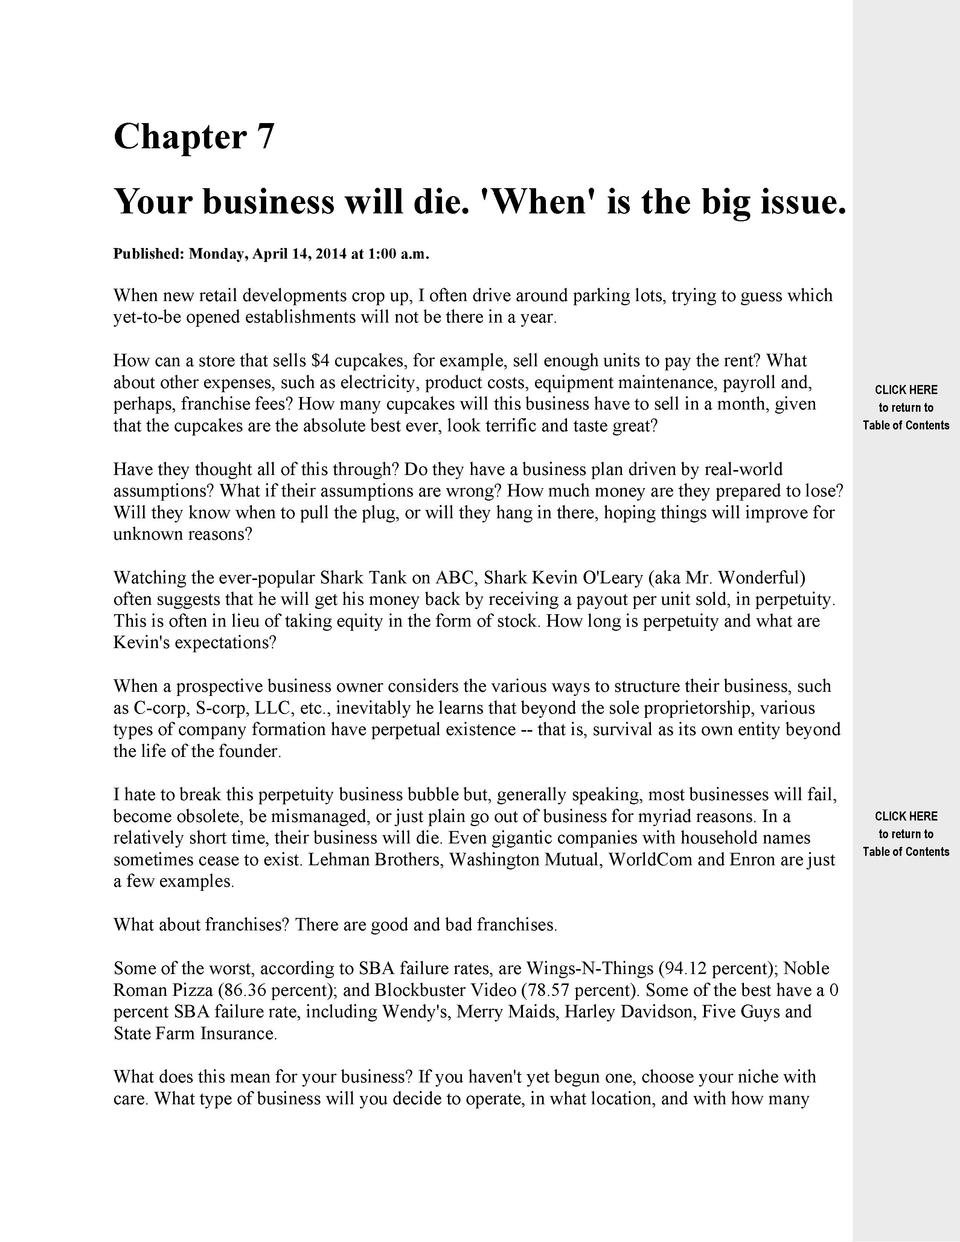 Chapter 7 Your business will die.  When  is the big issue. Published  Monday, April 14, 2014 at 1 00 a.m.  When new retail...